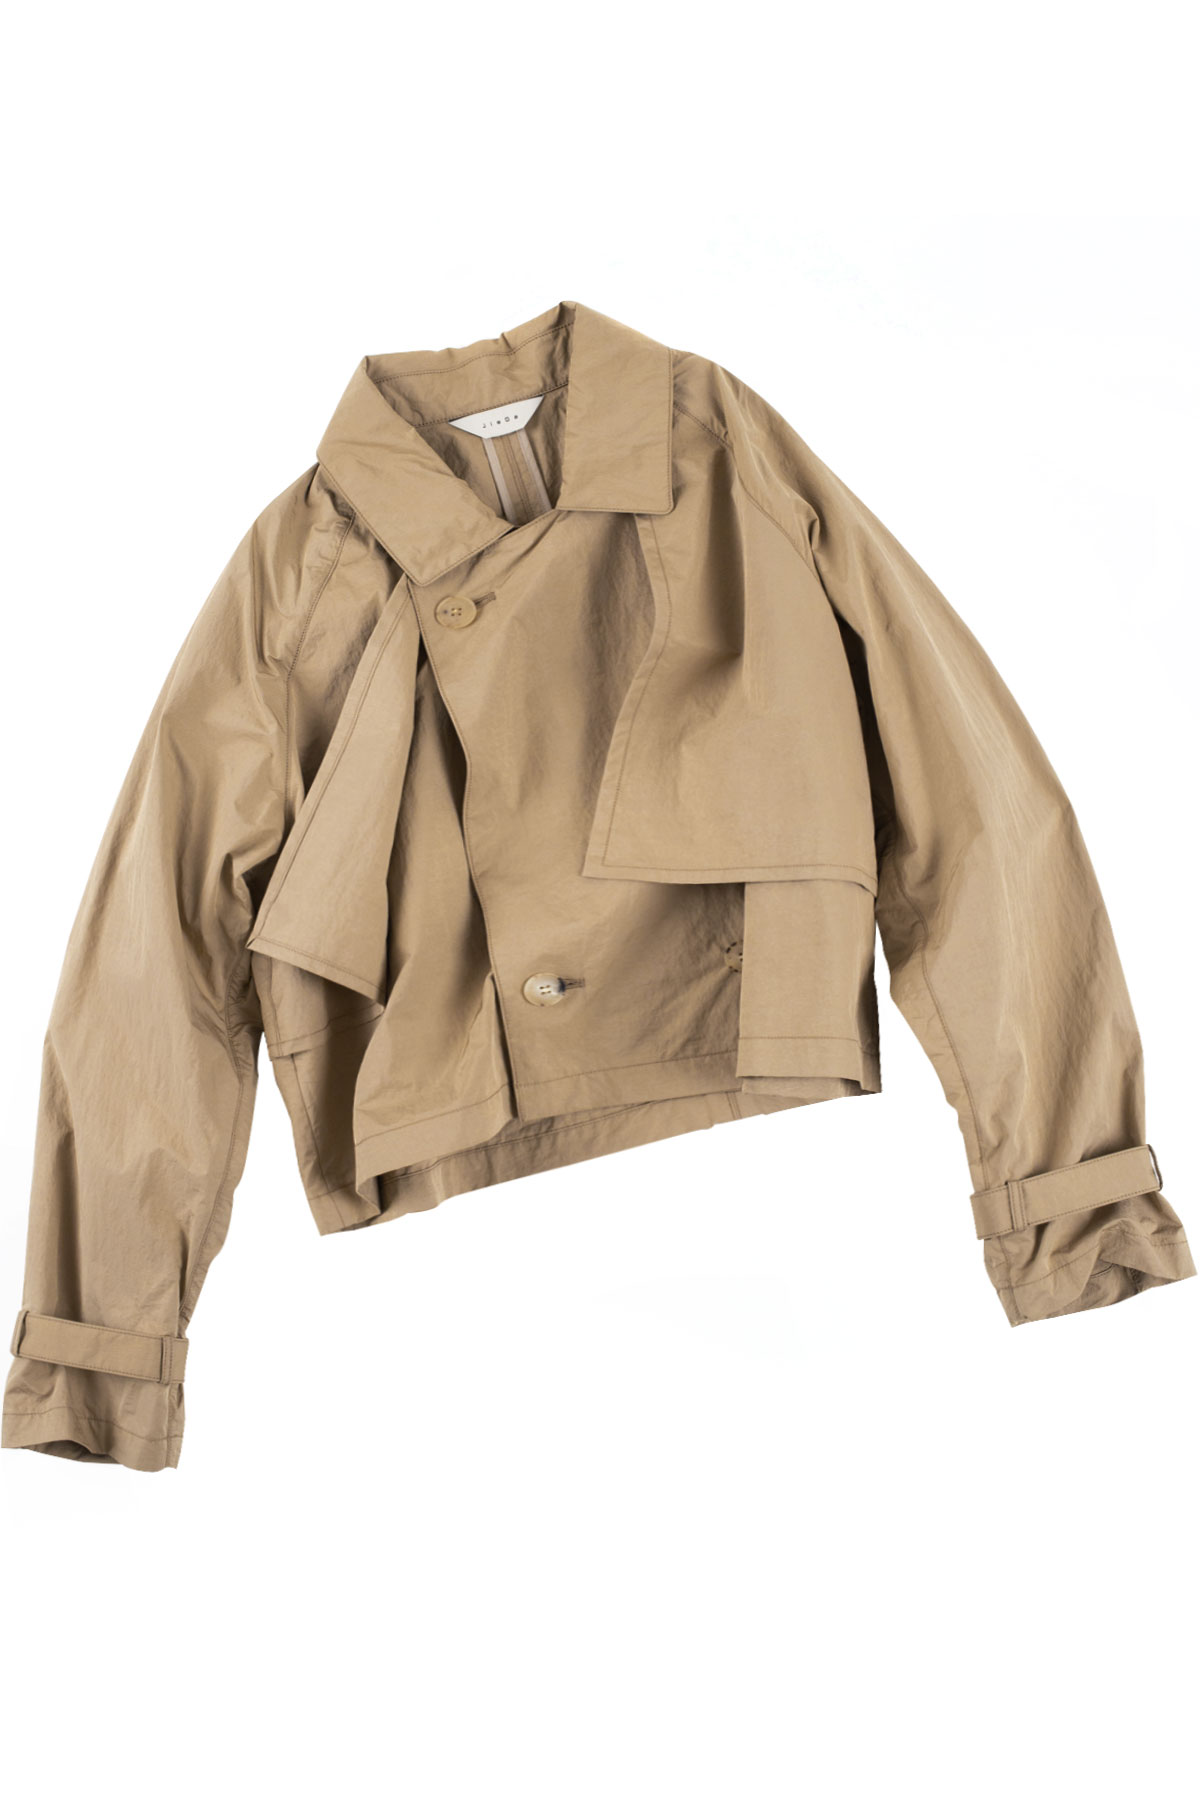 JieDa : Short Trench Jacket (Beige)